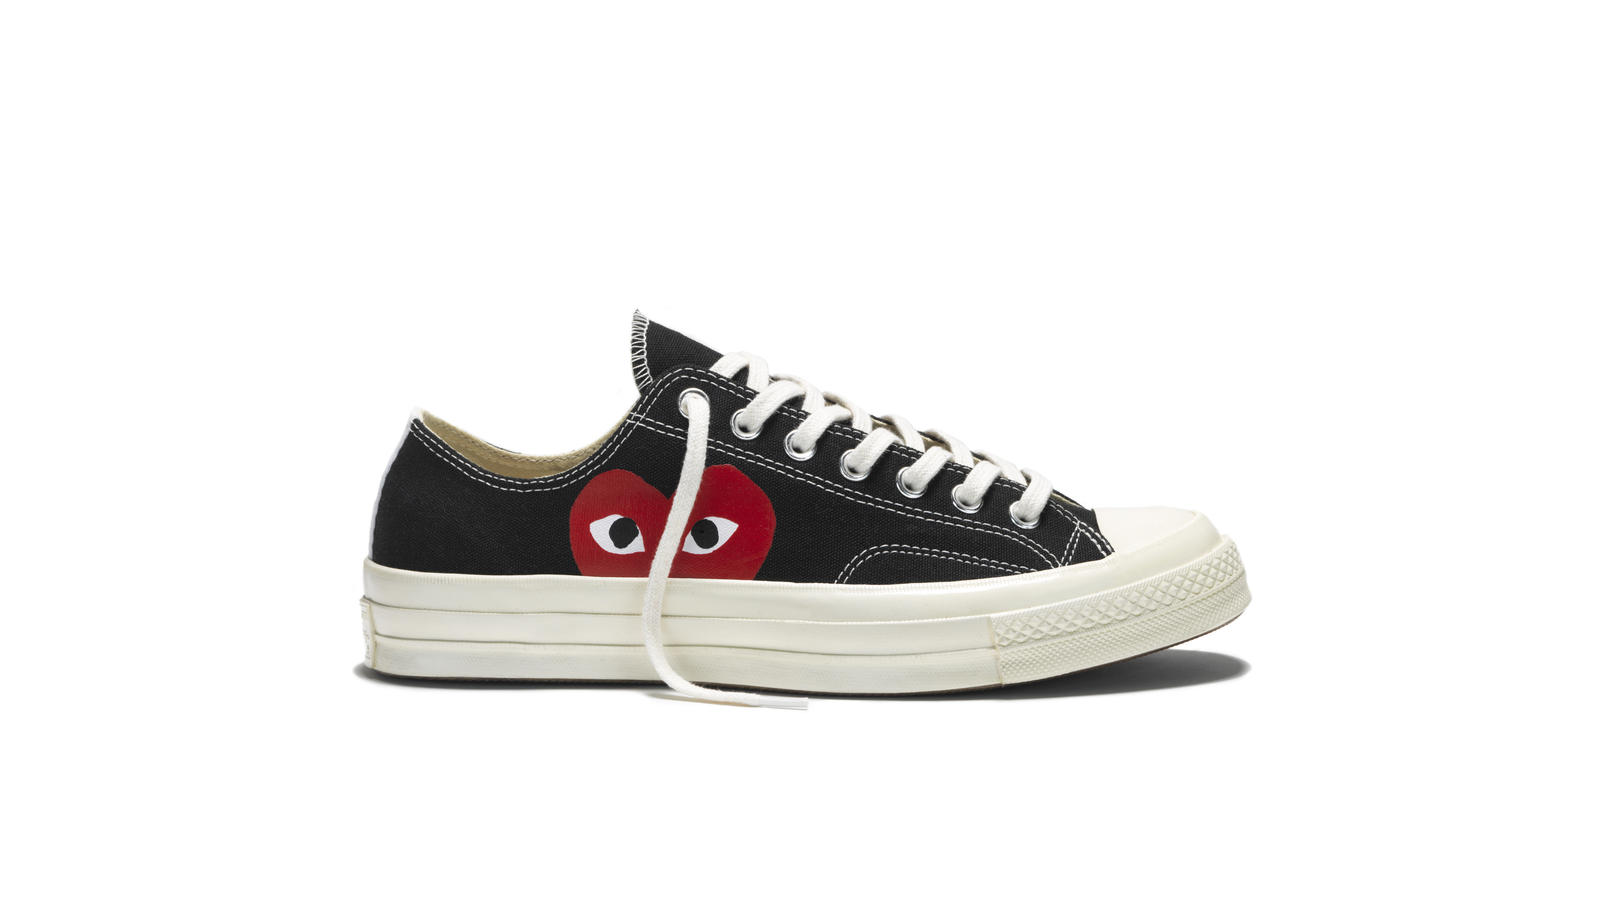 6134cc60f9ac Chuck Taylor All Star 70 Play Comme Des Garcons Black Low Top Original